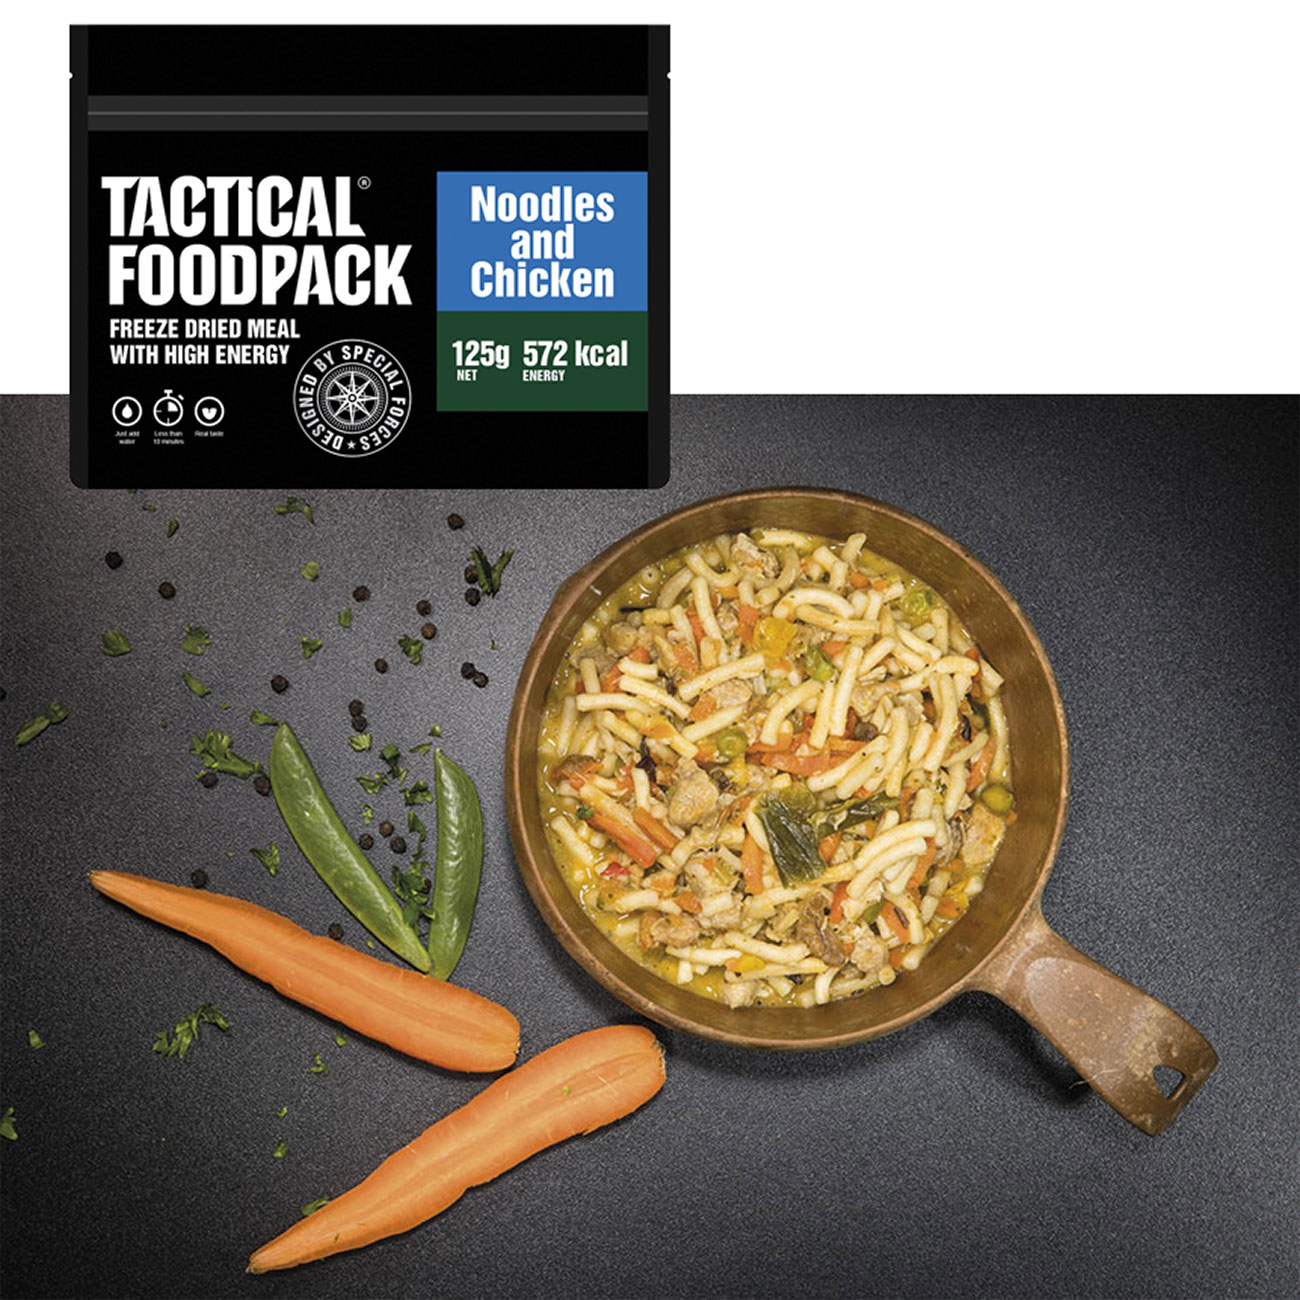 Tactical Foodpack Outdoor Mahlzeit Hühnchen mit Nudeln 0